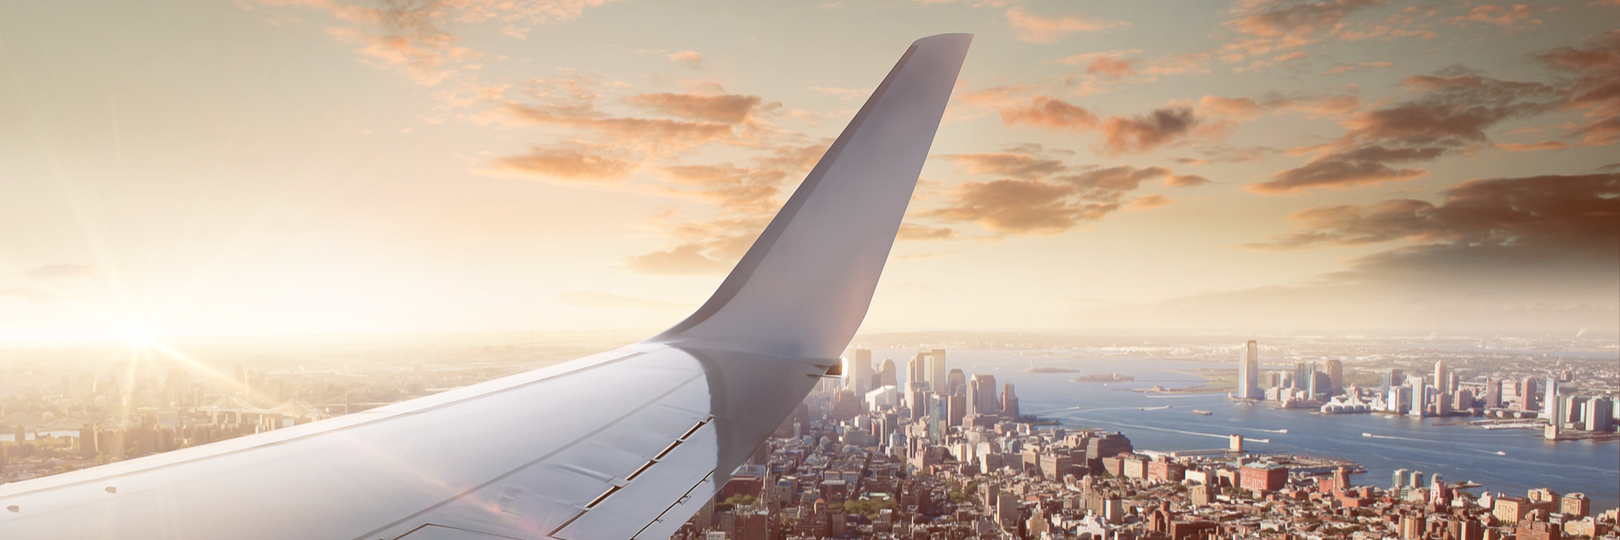 $173 for all round trip flights with United Airlines in the USA!